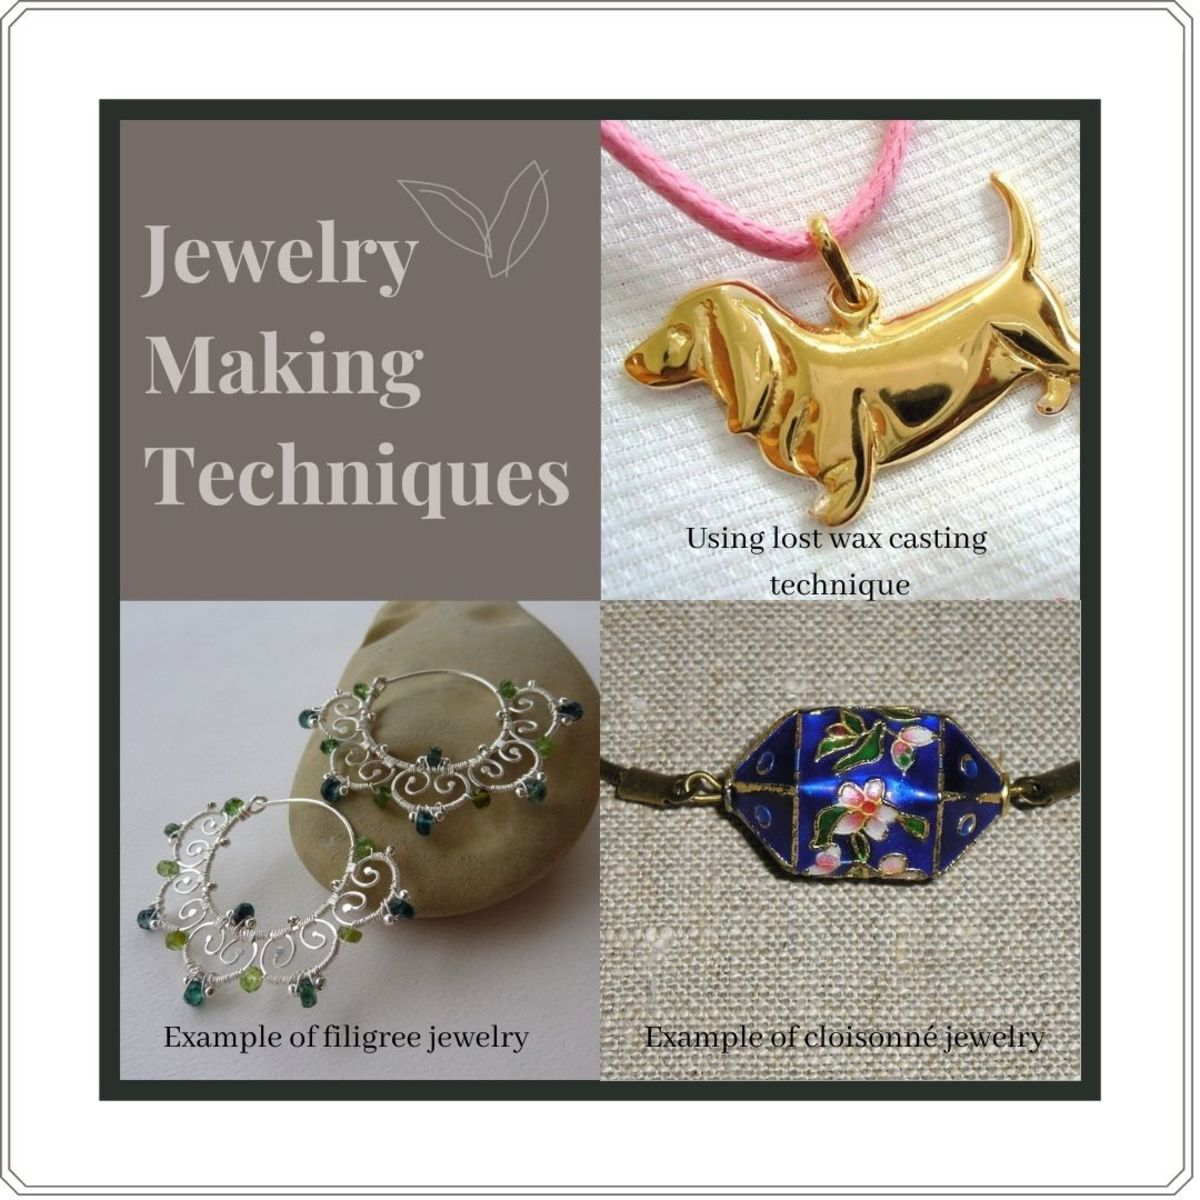 Examples of Jewelry Making Techniques: Filigree, Cloisonné, and lost wax casting techniques